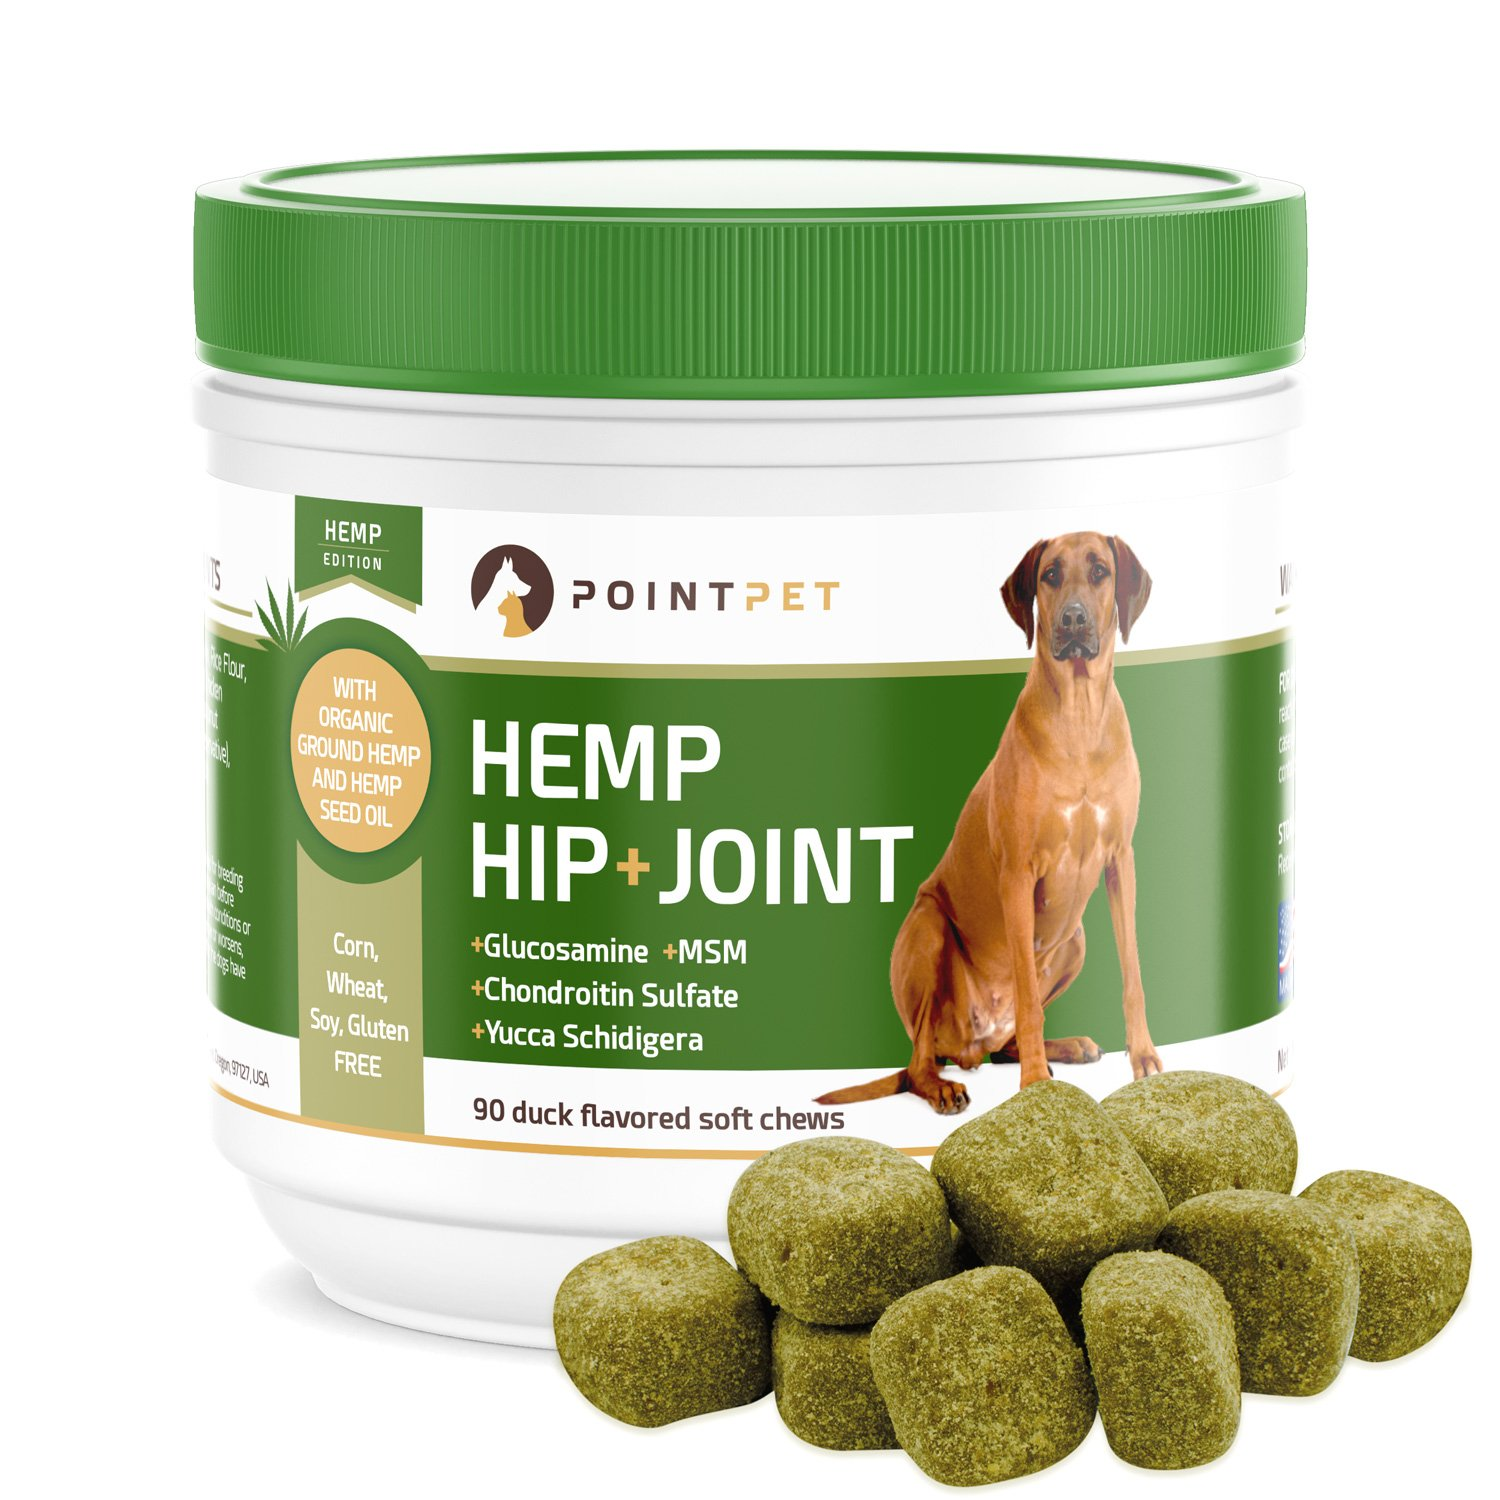 POINTPET Advanced Hip and Joint Supplement for Dogs with Organic Hemp Seeds and Oil, Best Glucosamine Chondroitin, MSM, Omega 3-6, Improves Mobility, Reduces Pain and Inflammation, 90 Soft Chews by POINTPET